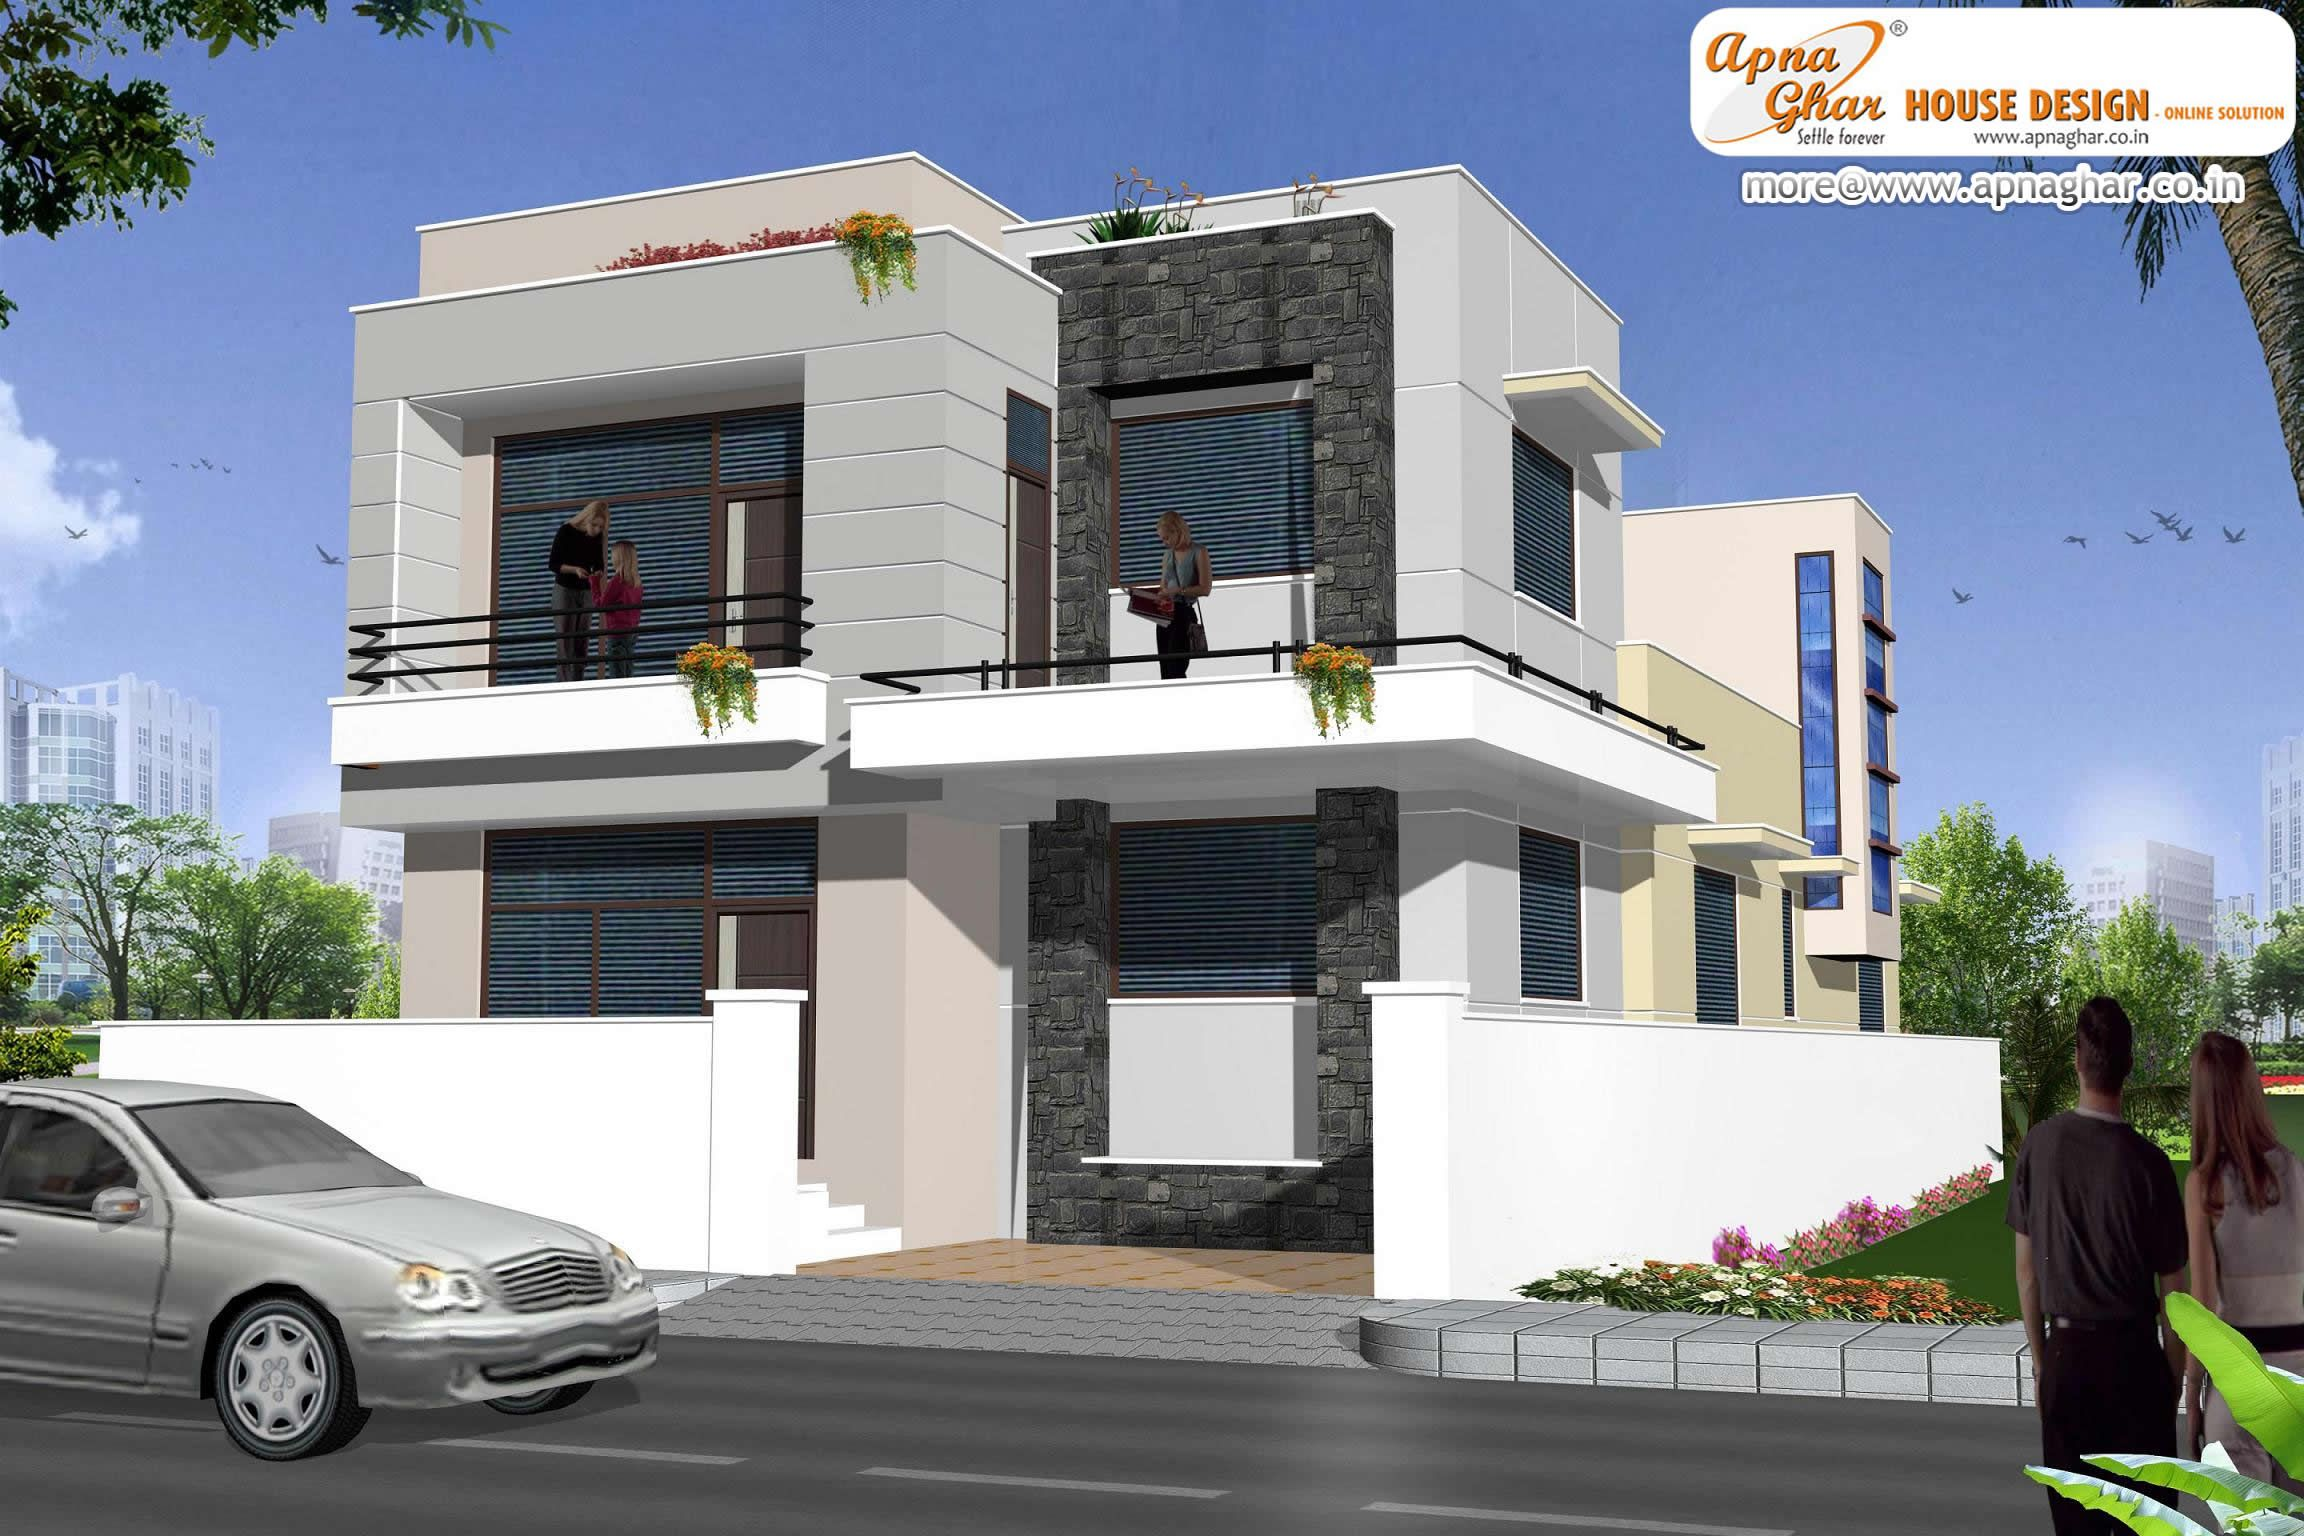 Modern duplex 2 floor house design area 198m2 9m x for Contemporary duplex plans